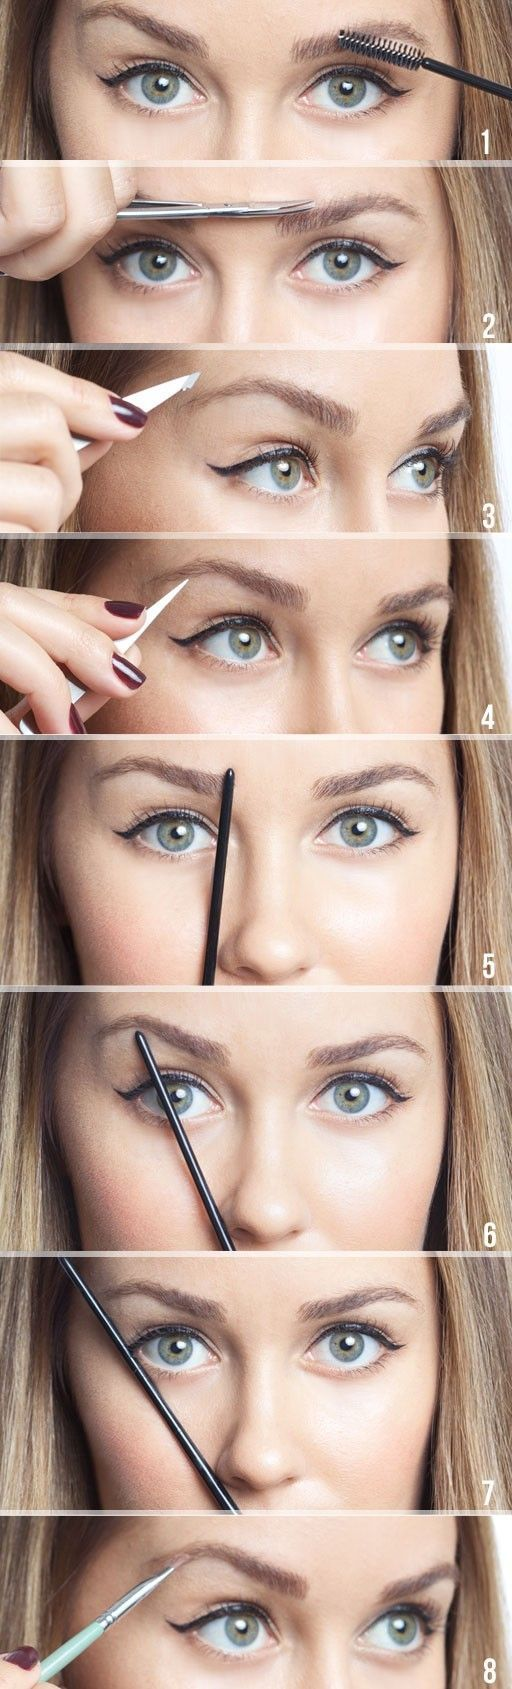 Lauren Conrad DIY eyebrow tutorial perfect brows